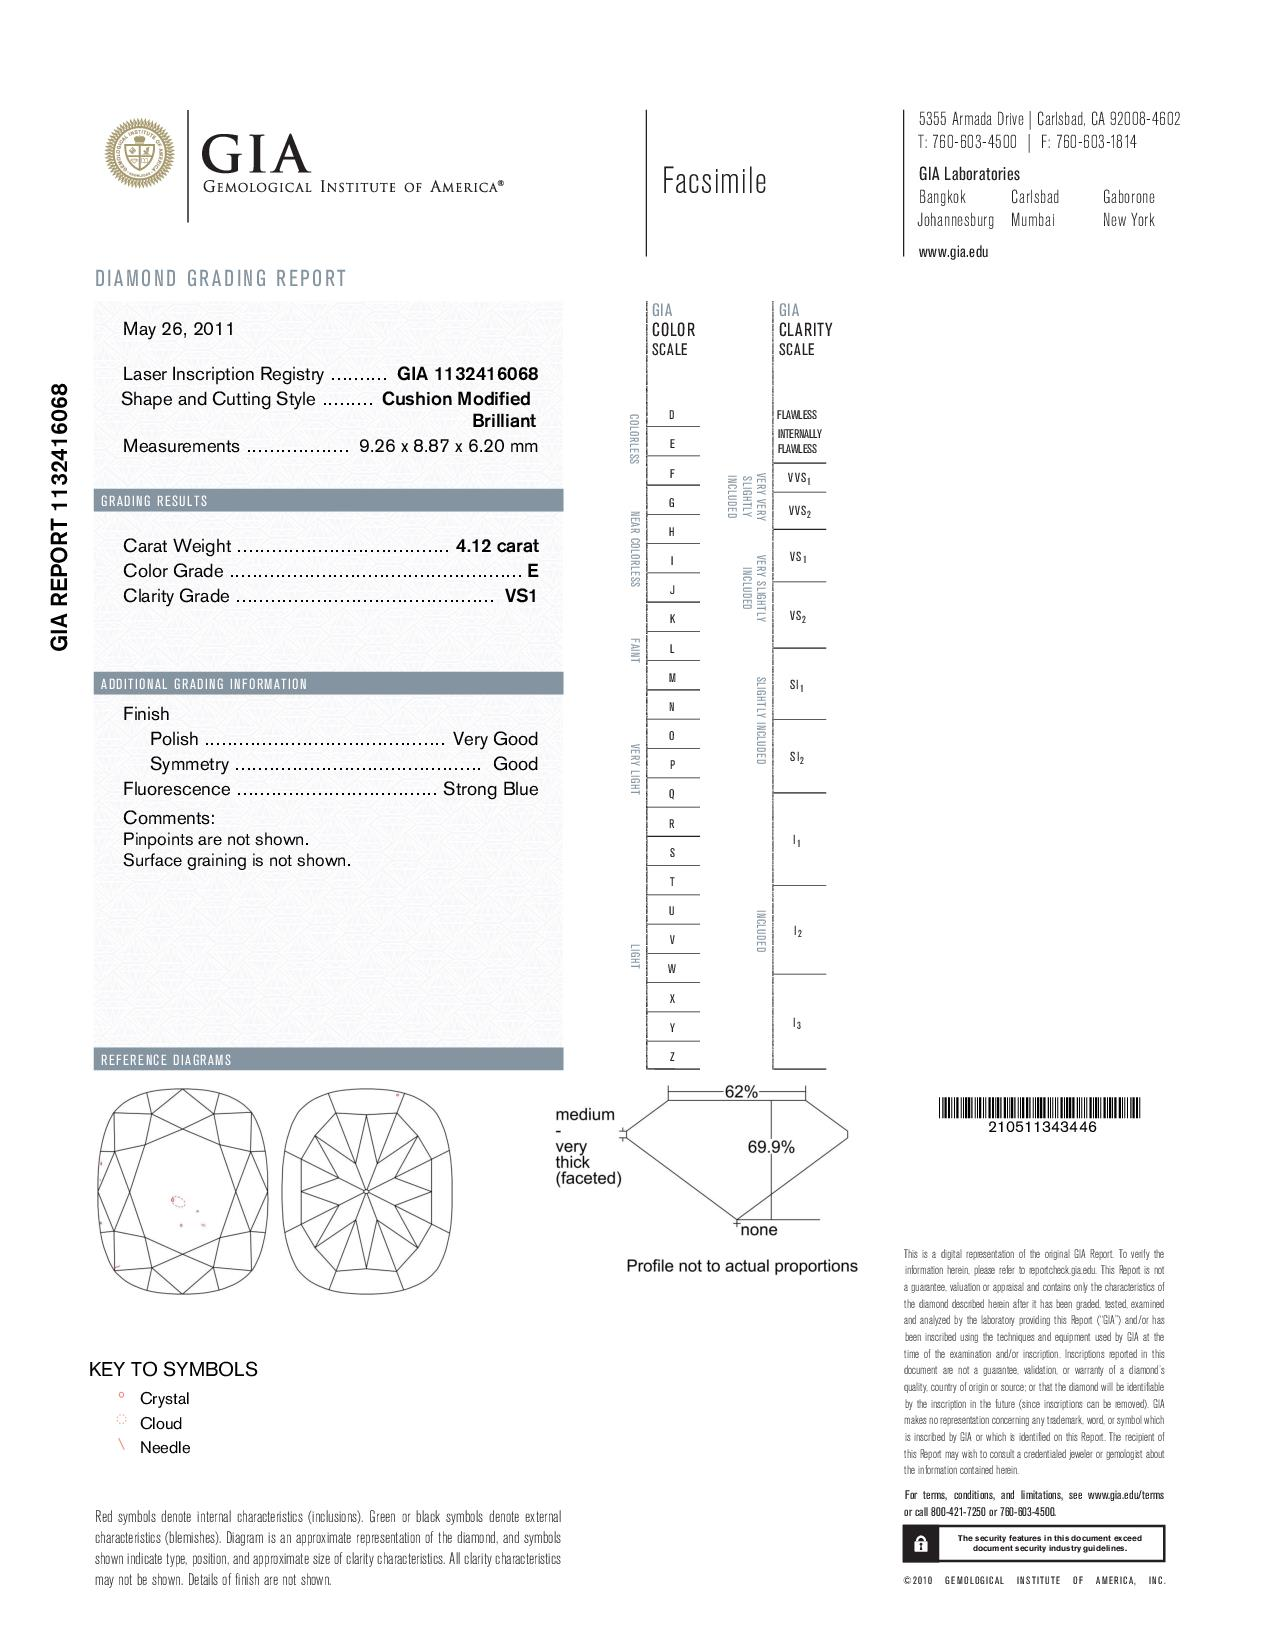 This is a 4.12 carat cushion shape, E color, VS1 clarity natural diamond accompanied by a GIA grading report.